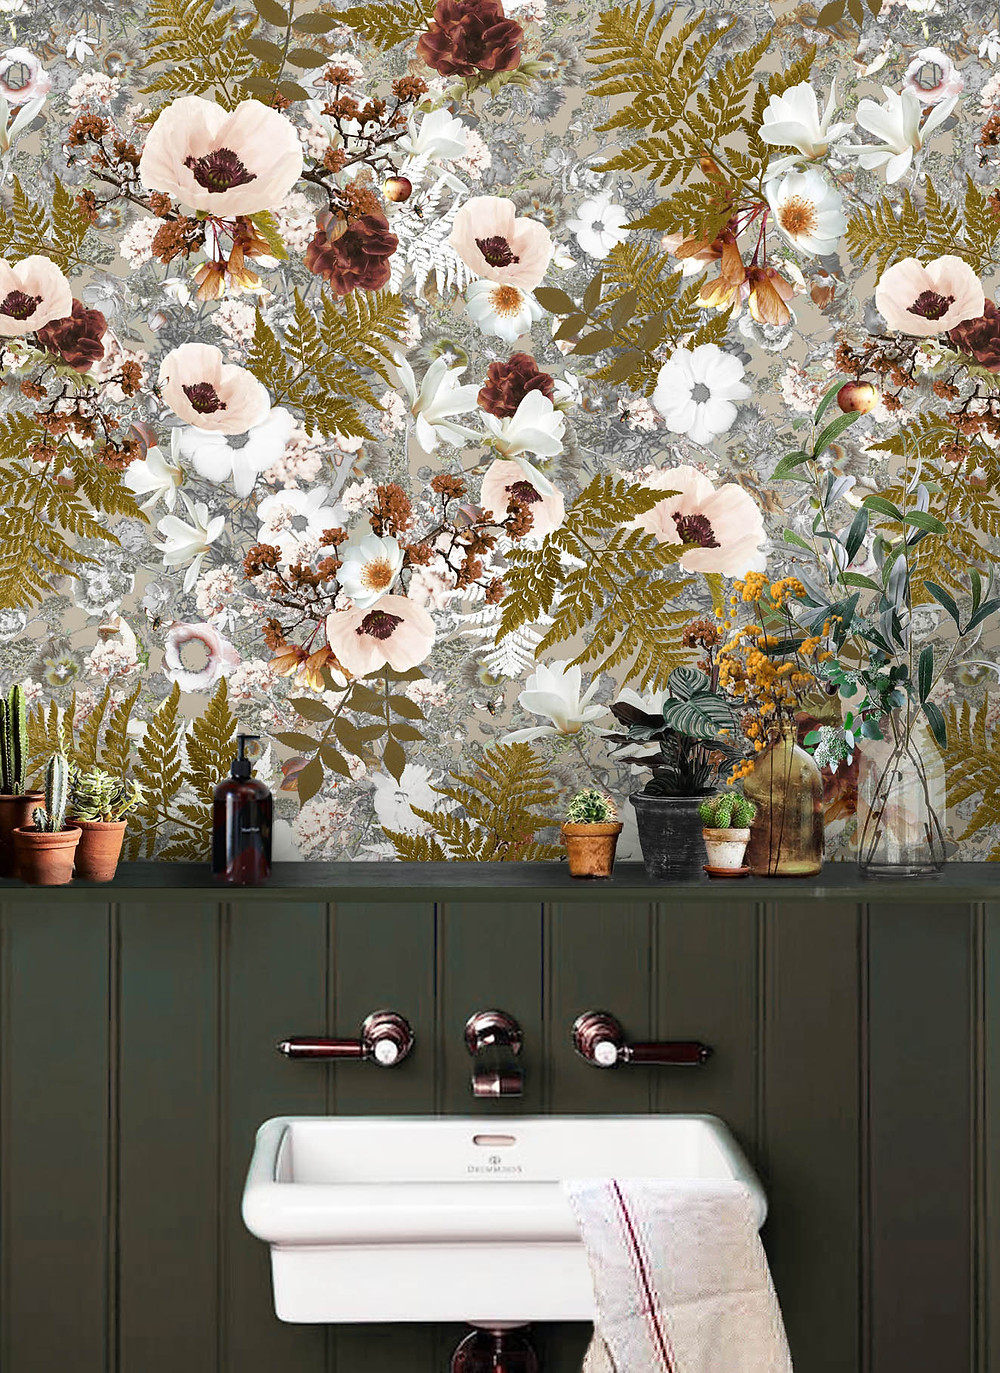 Floral Wallpaper in Bathroom by Good & Craft